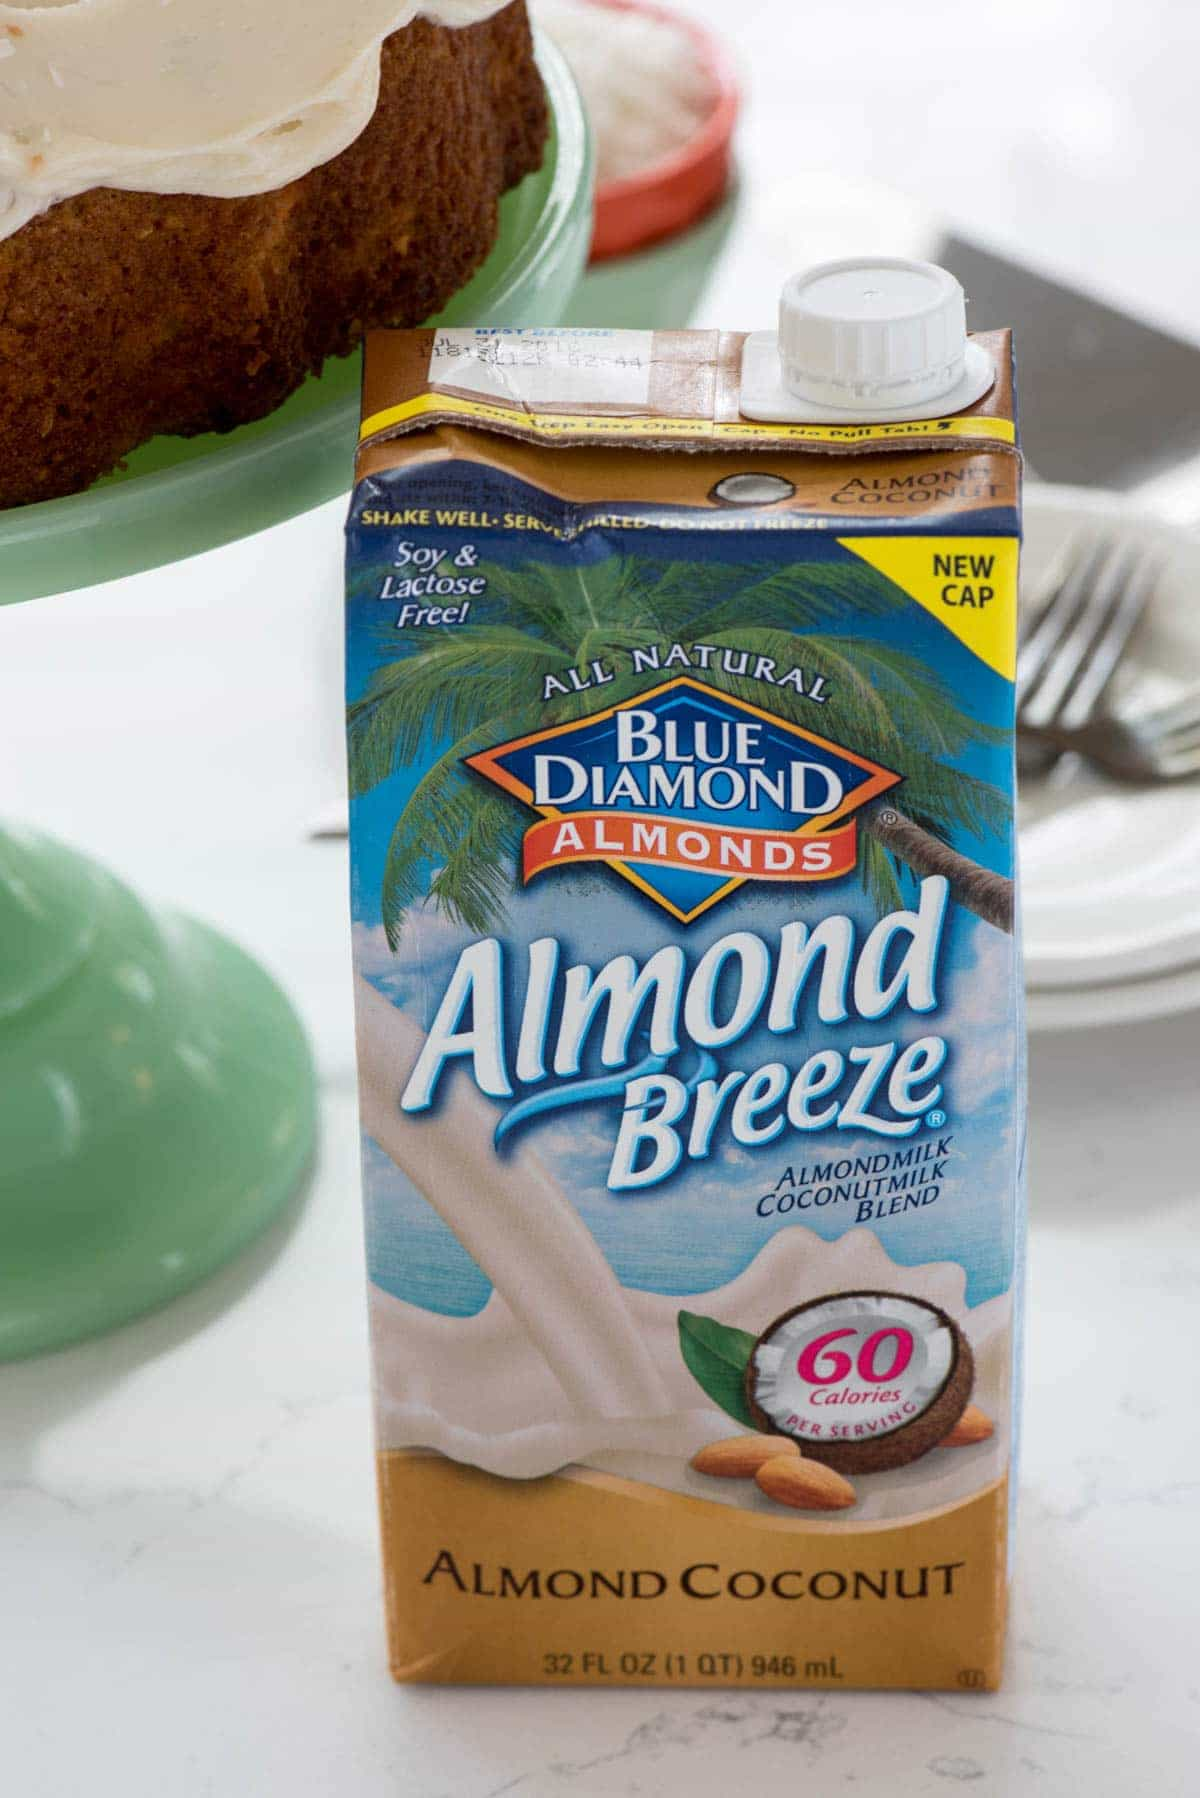 Almond Breeze Almond Milk Coconut Milk Blend